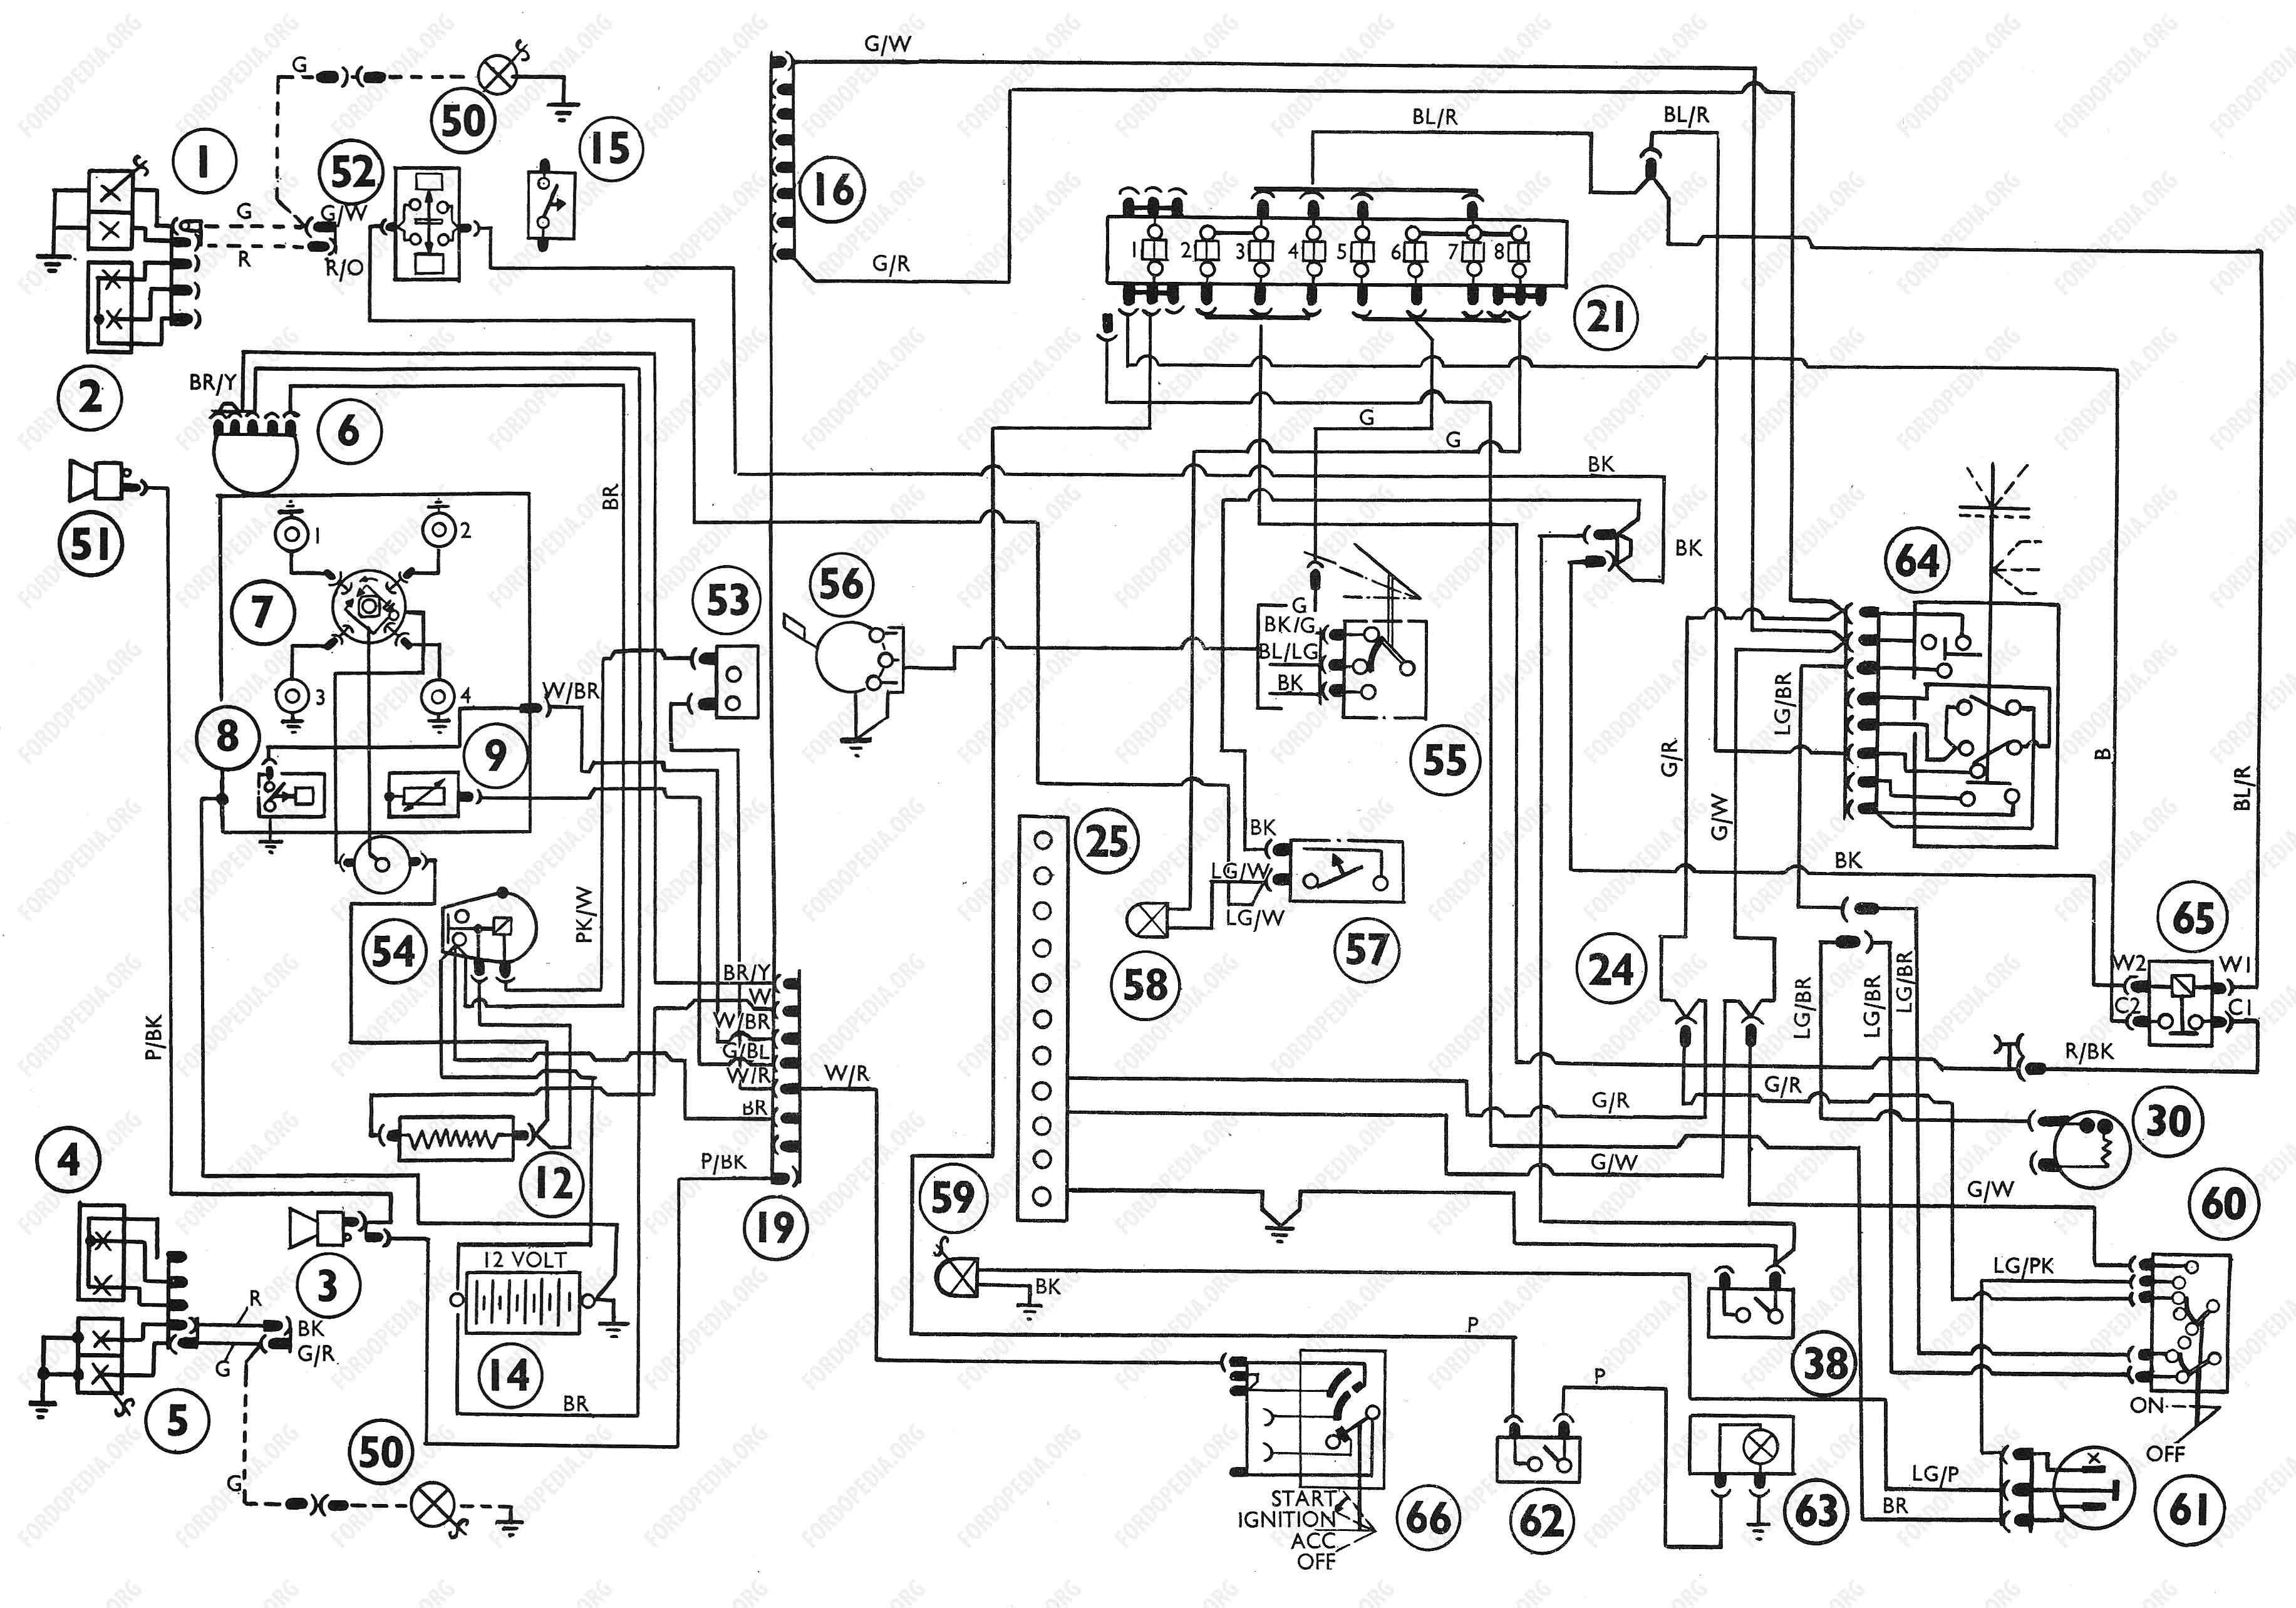 ford connect wiring diagram data wiring schemes 2006 ford f150 radio wiring diagram ford connect wiring diagram swift